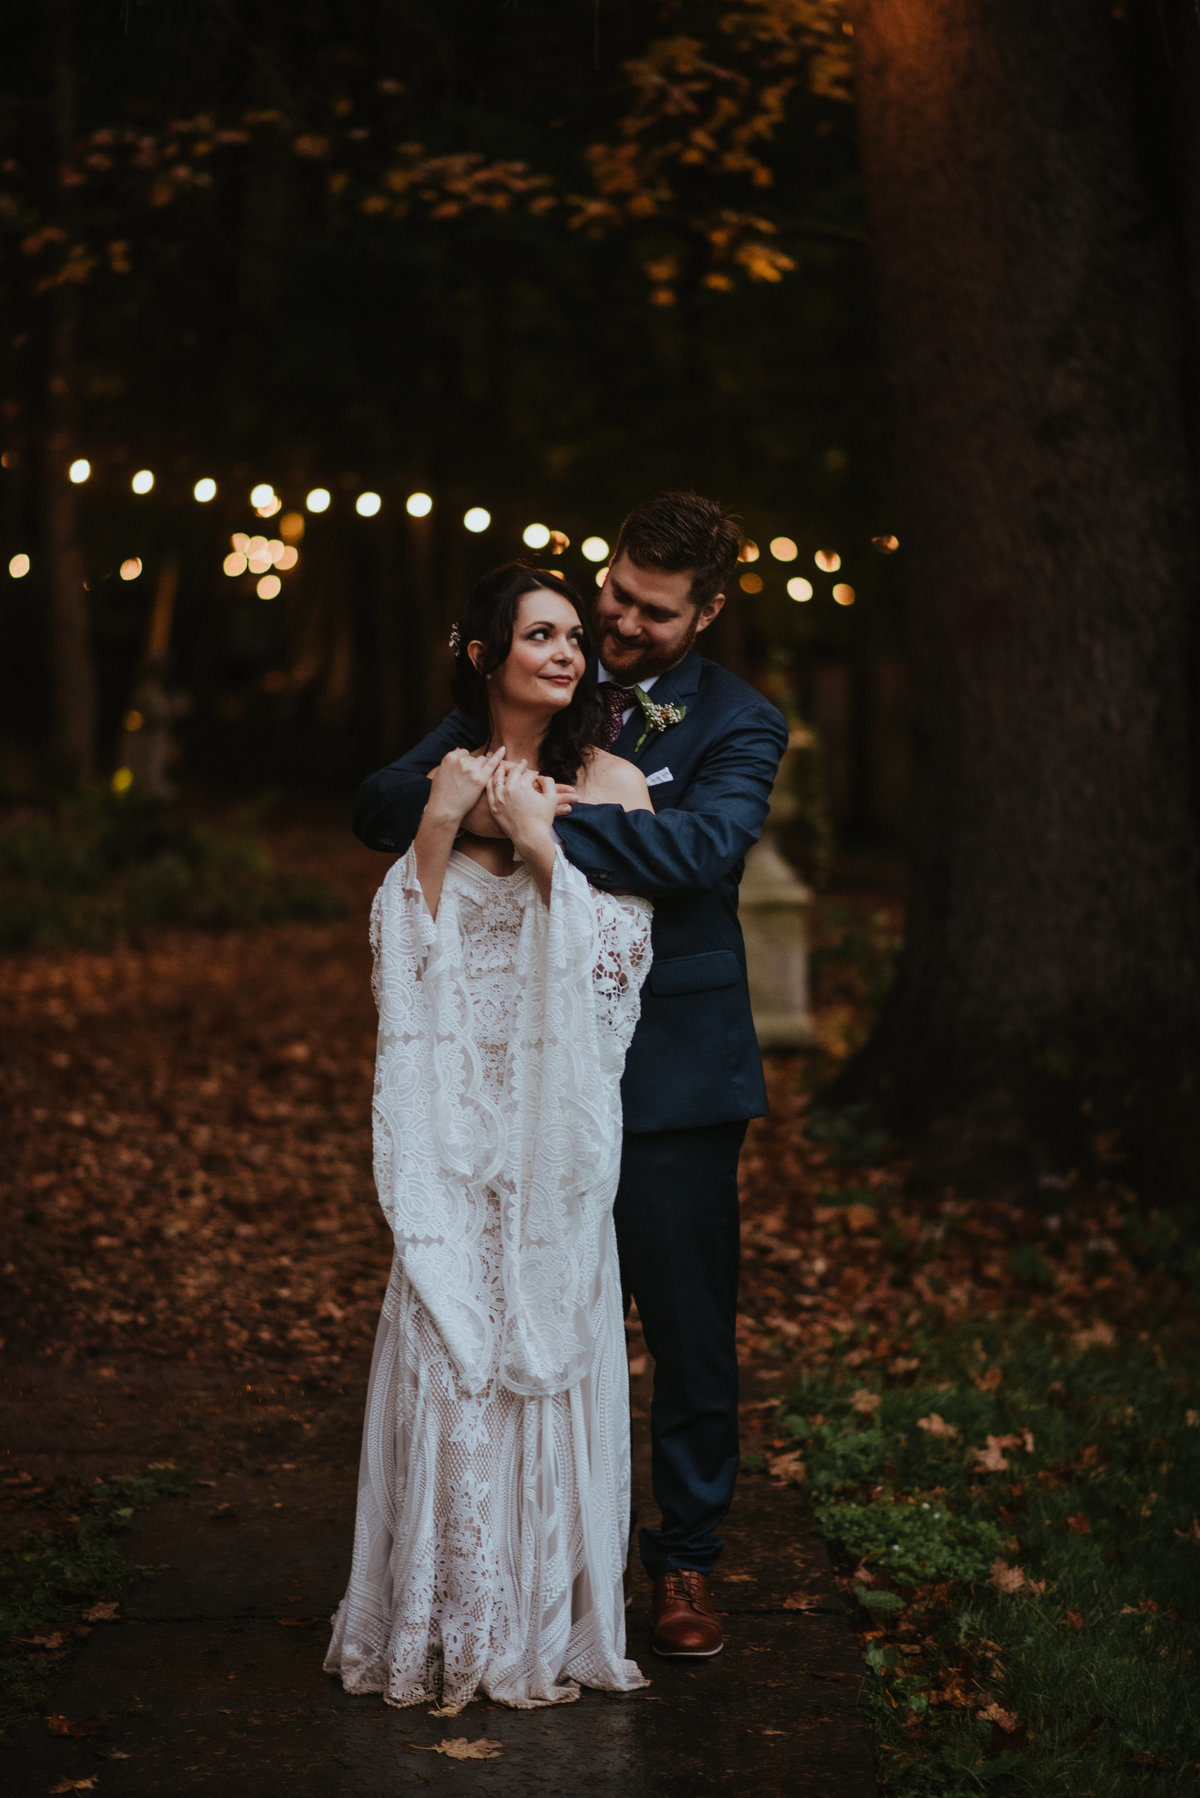 CatskillsJulietandEric2019WeddingPhotography (137 of 213)